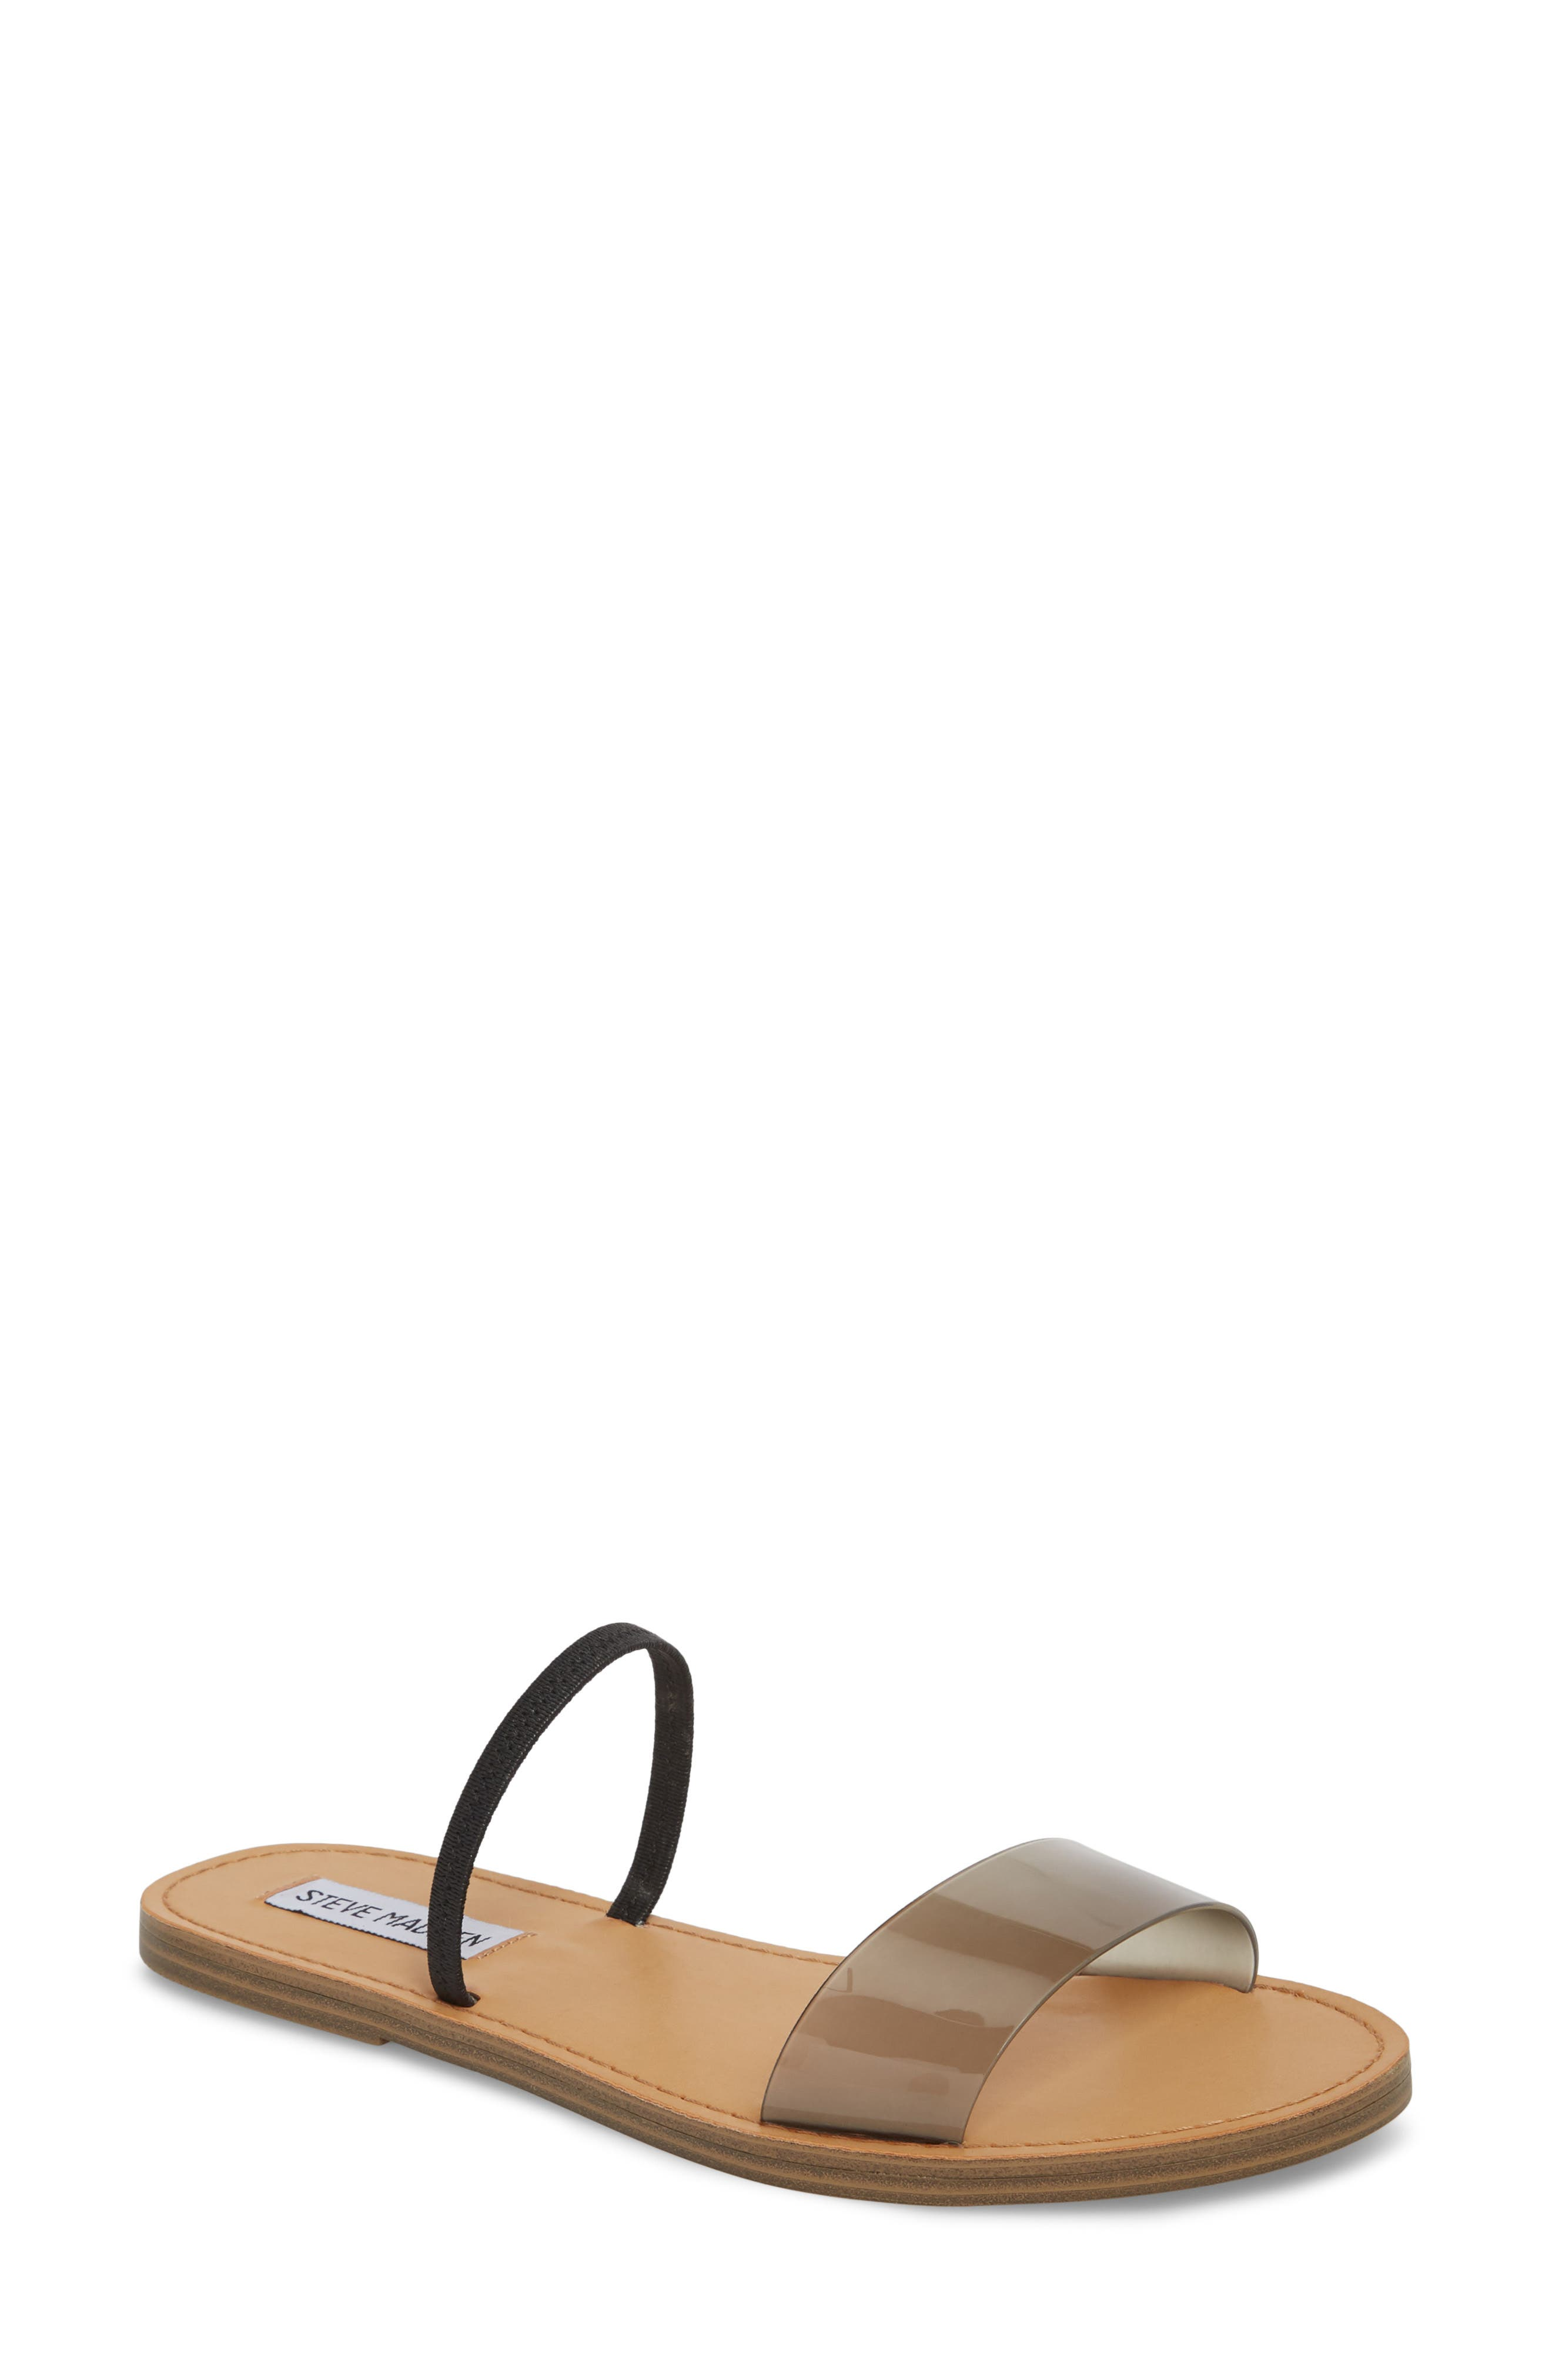 Dasha Strappy Slide Sandal,                             Main thumbnail 1, color,                             095